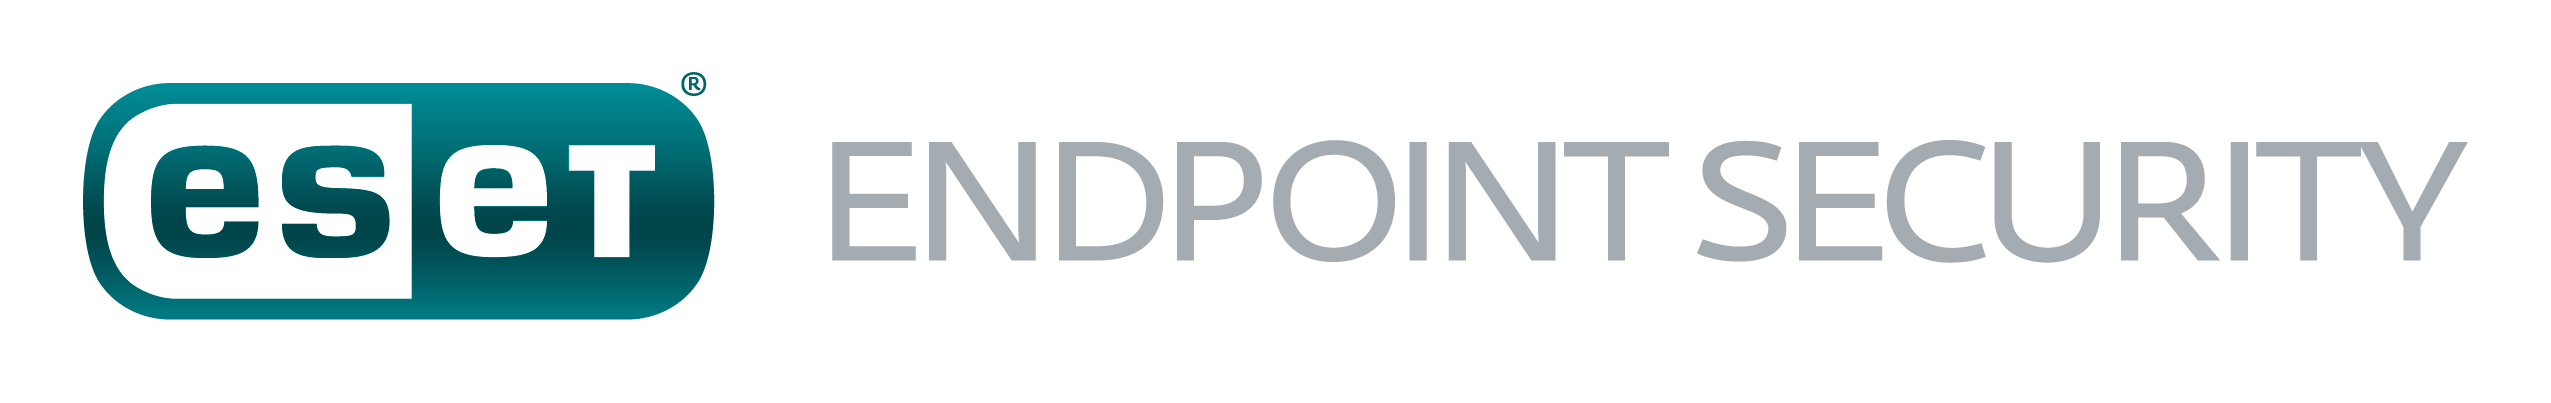 logotype - ESET Endpoint Security-04